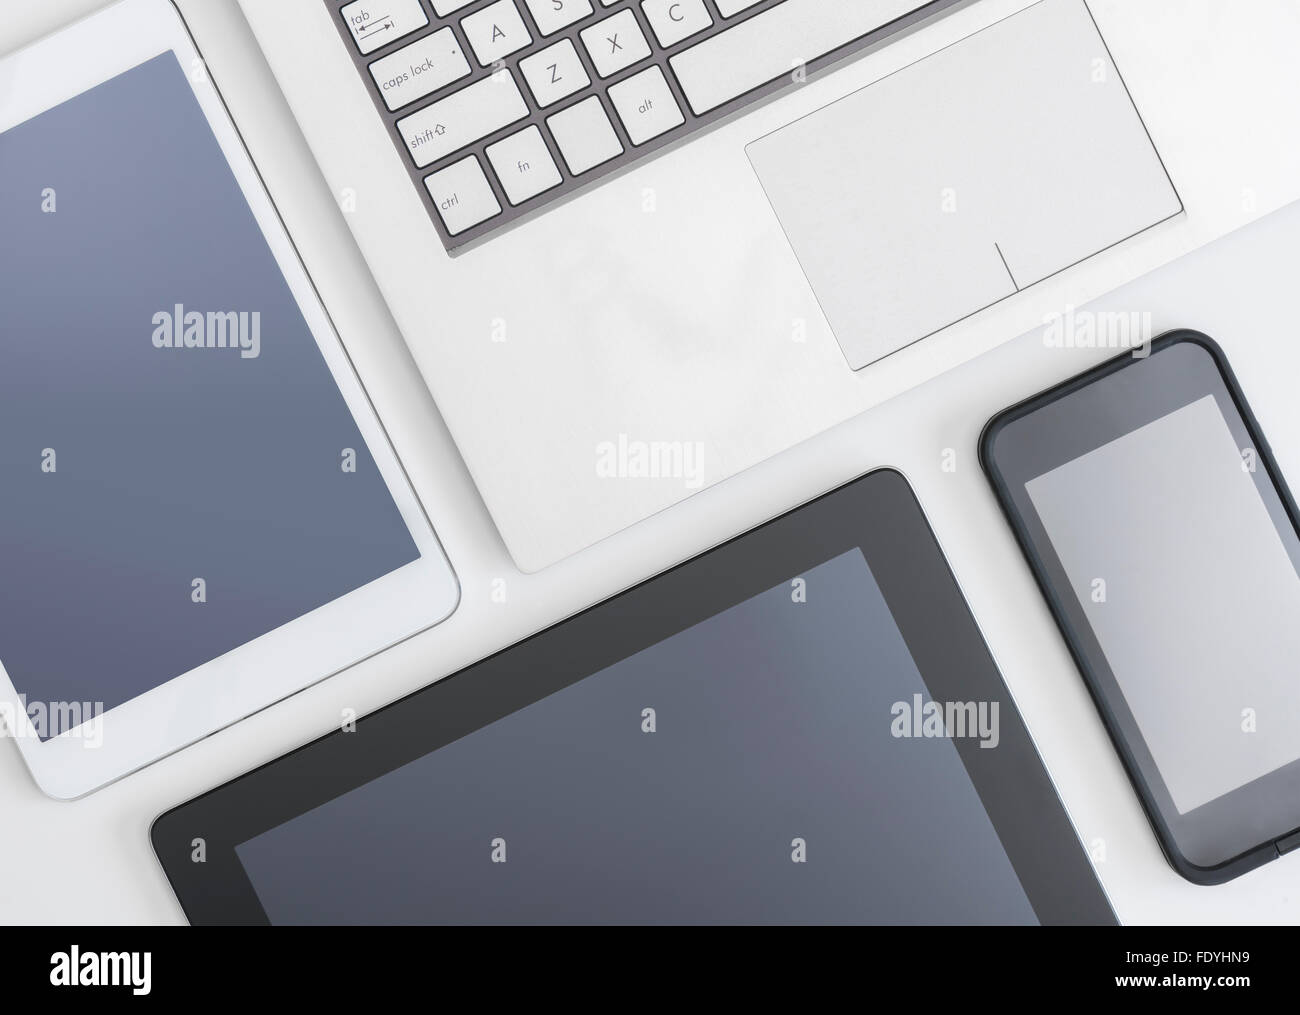 Flat lay photo of gadgets - Stock Image